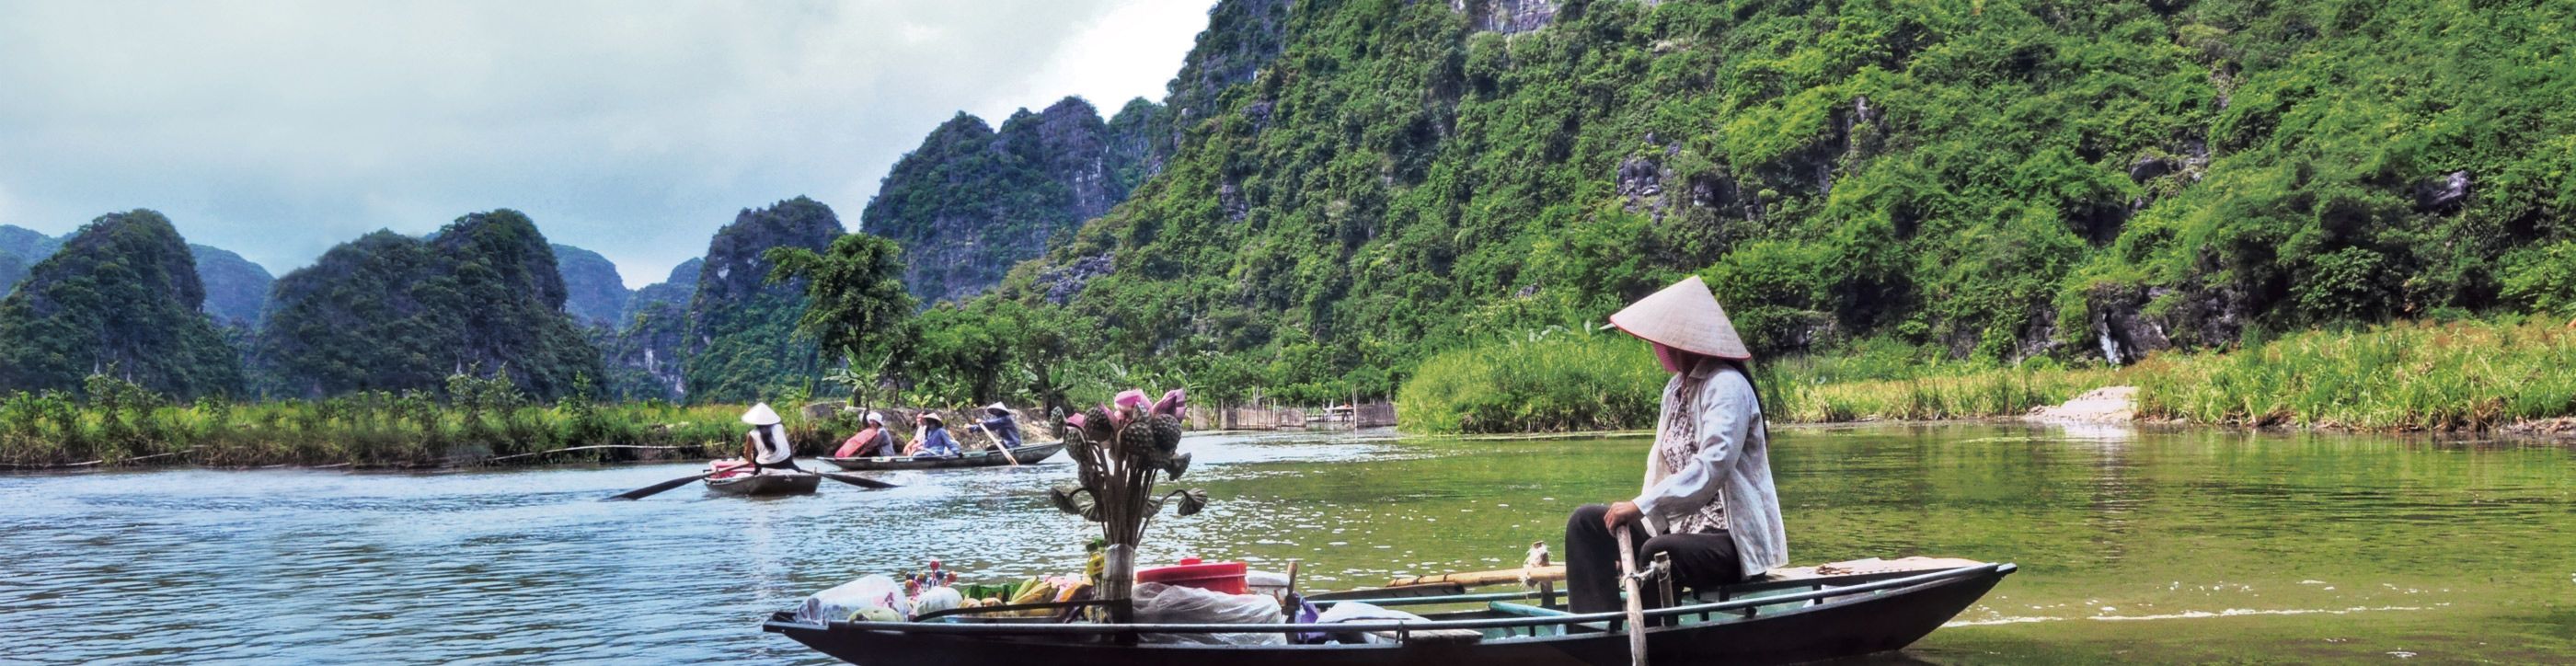 Timeless Wonder of Vietnam, Cambodia & the Mekong